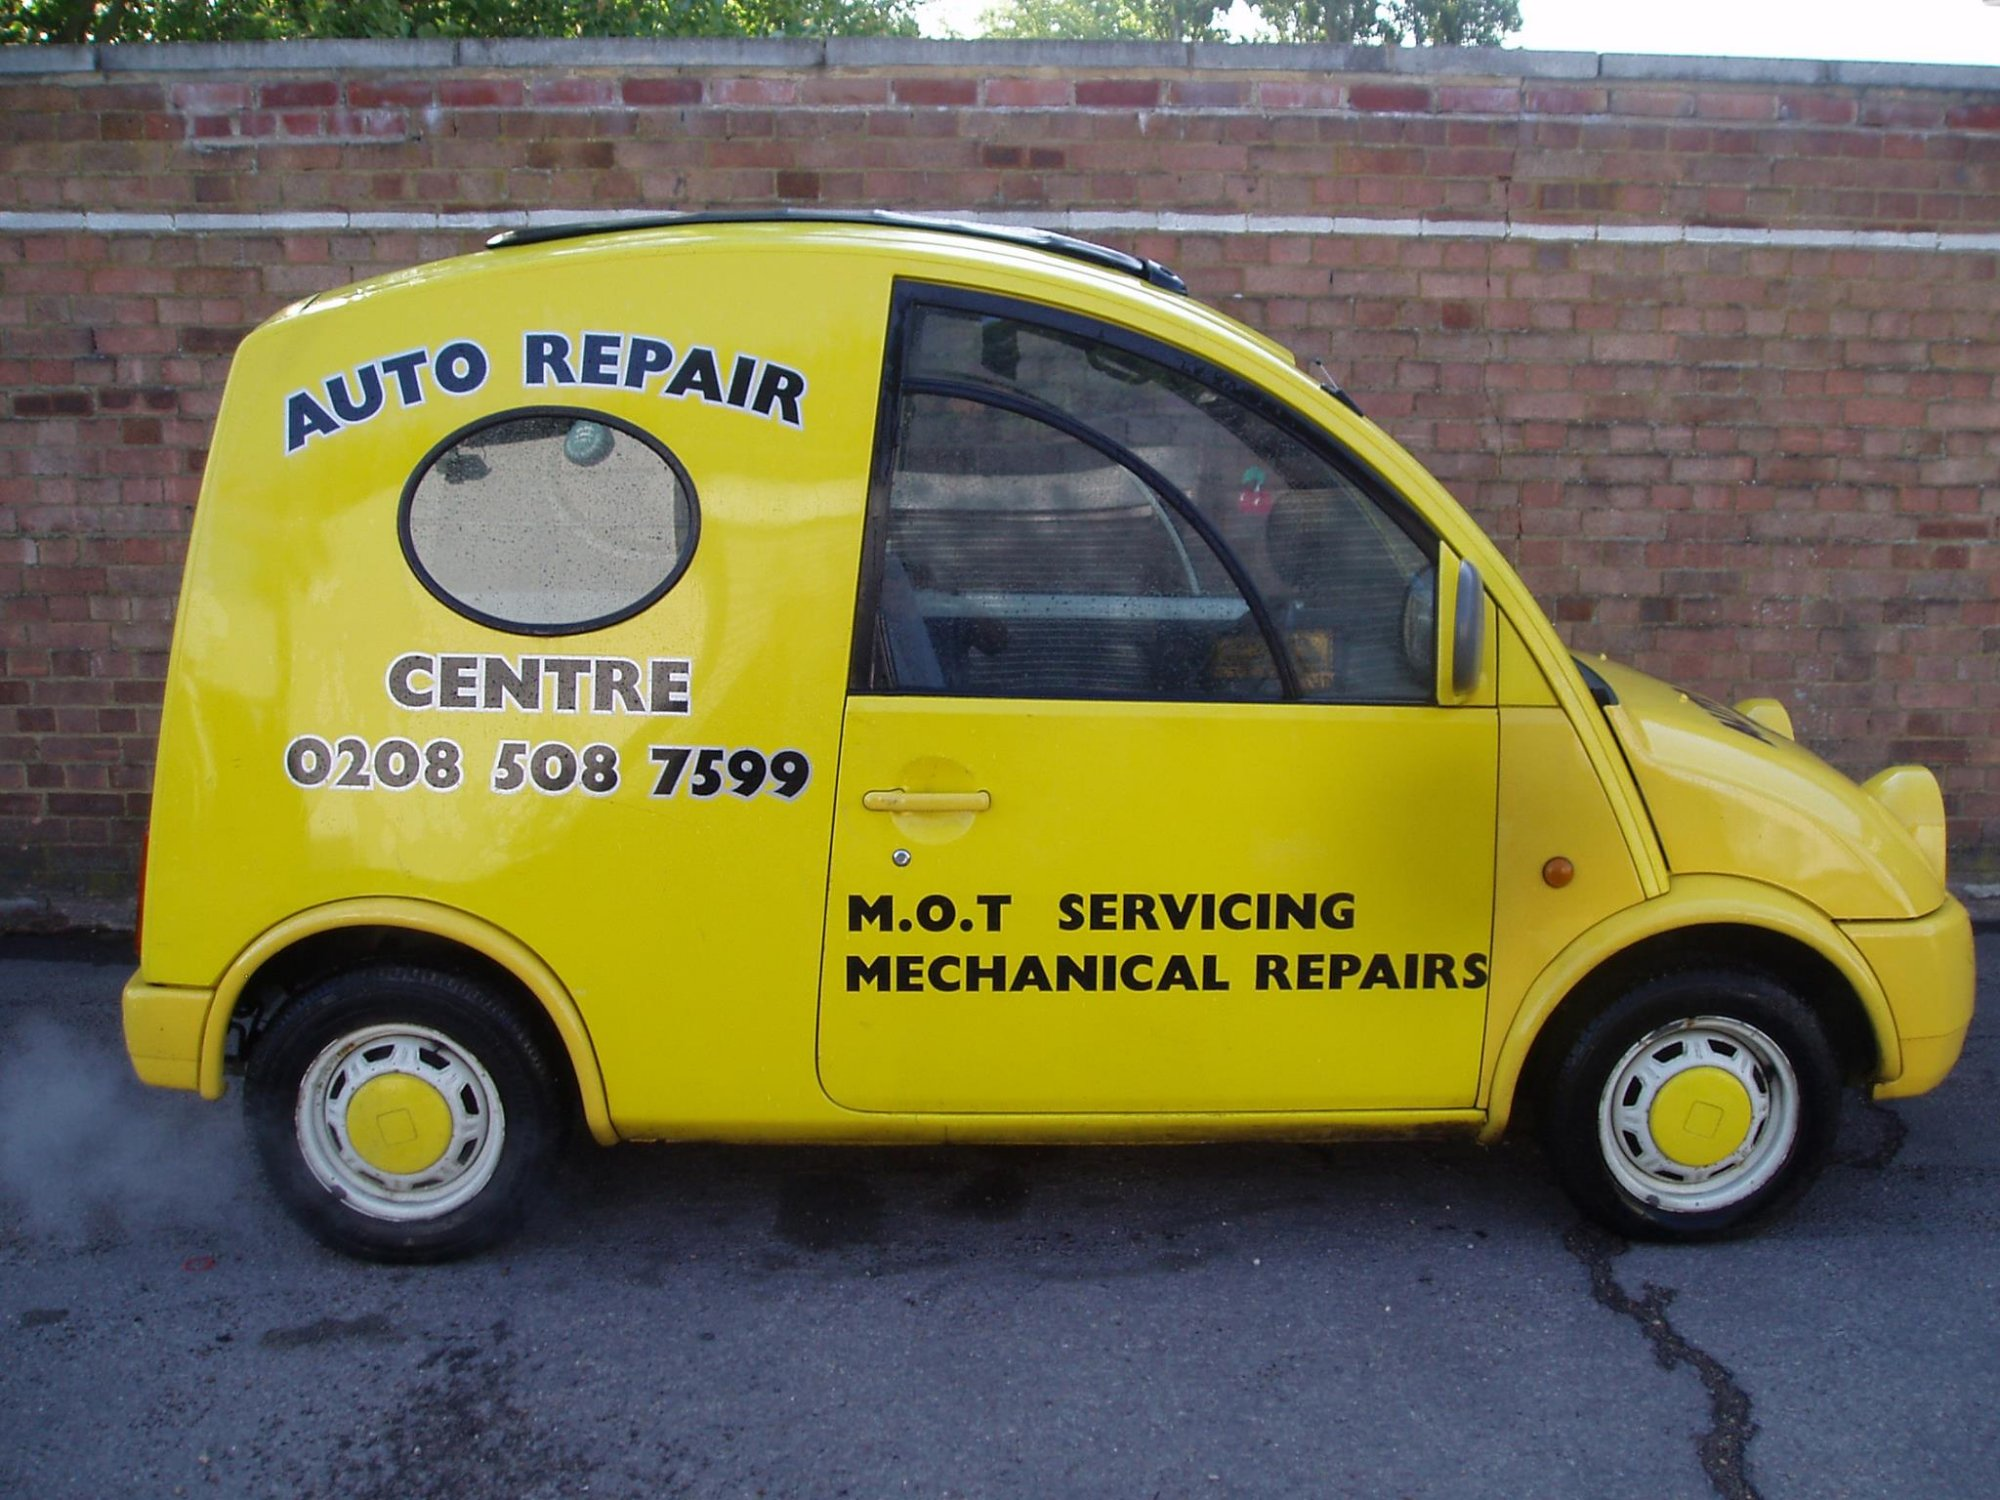 Auto Repair Centre Loughton - Car Repair Garage